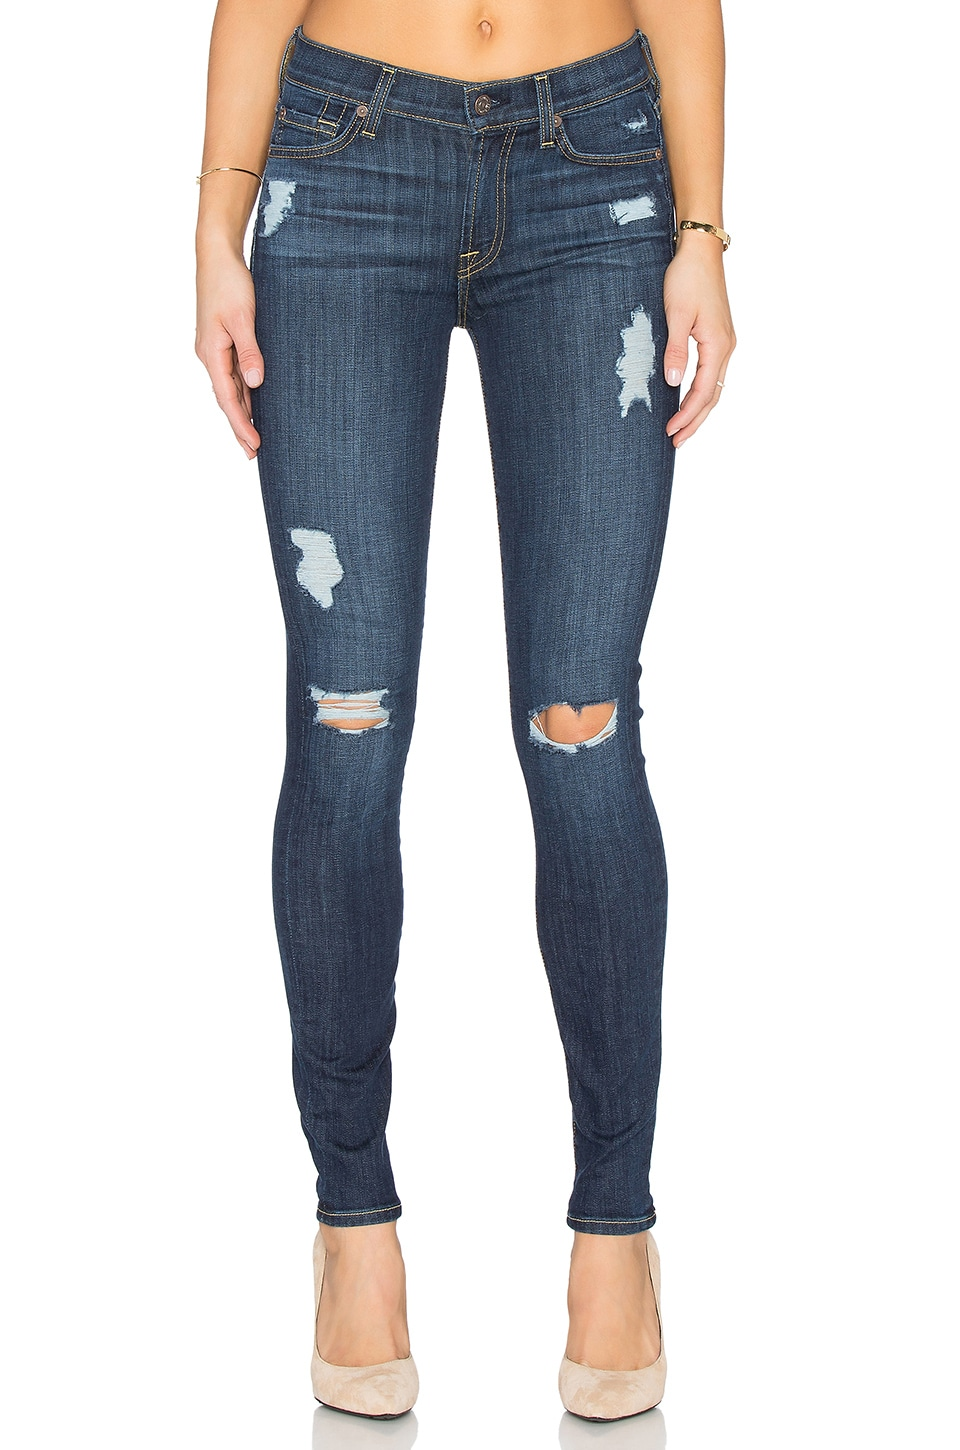 7 For All Mankind The Destroy Skinny in Nouveau Destroy